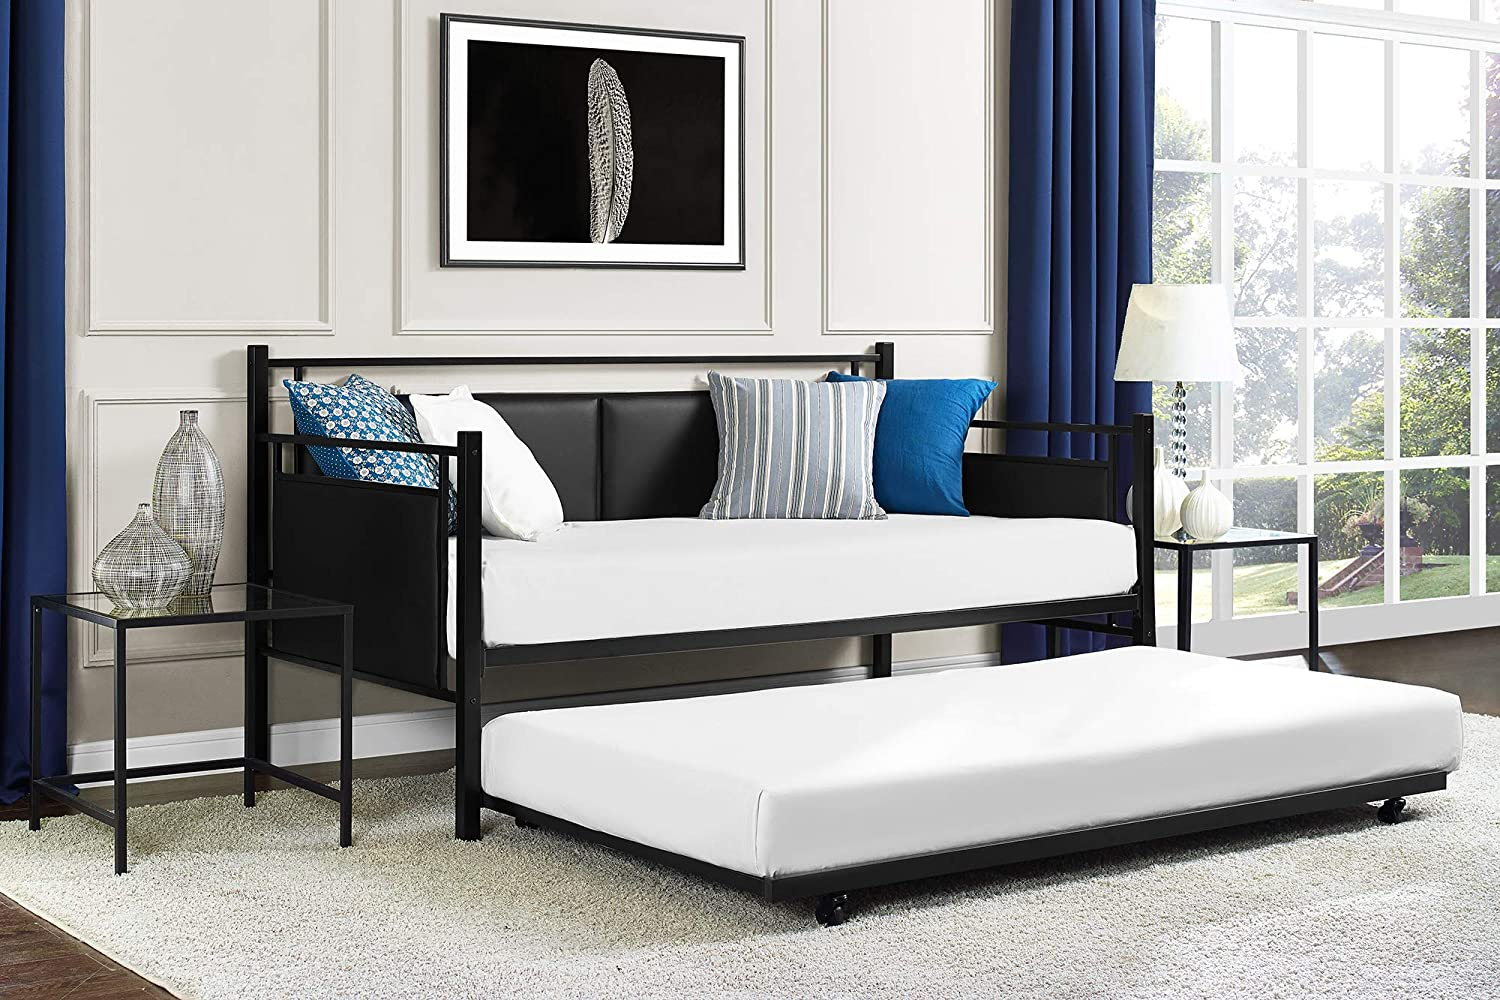 DHP Astoria Metal and Upholstered Daybed and Trundle, Twin Size - Black 4090039